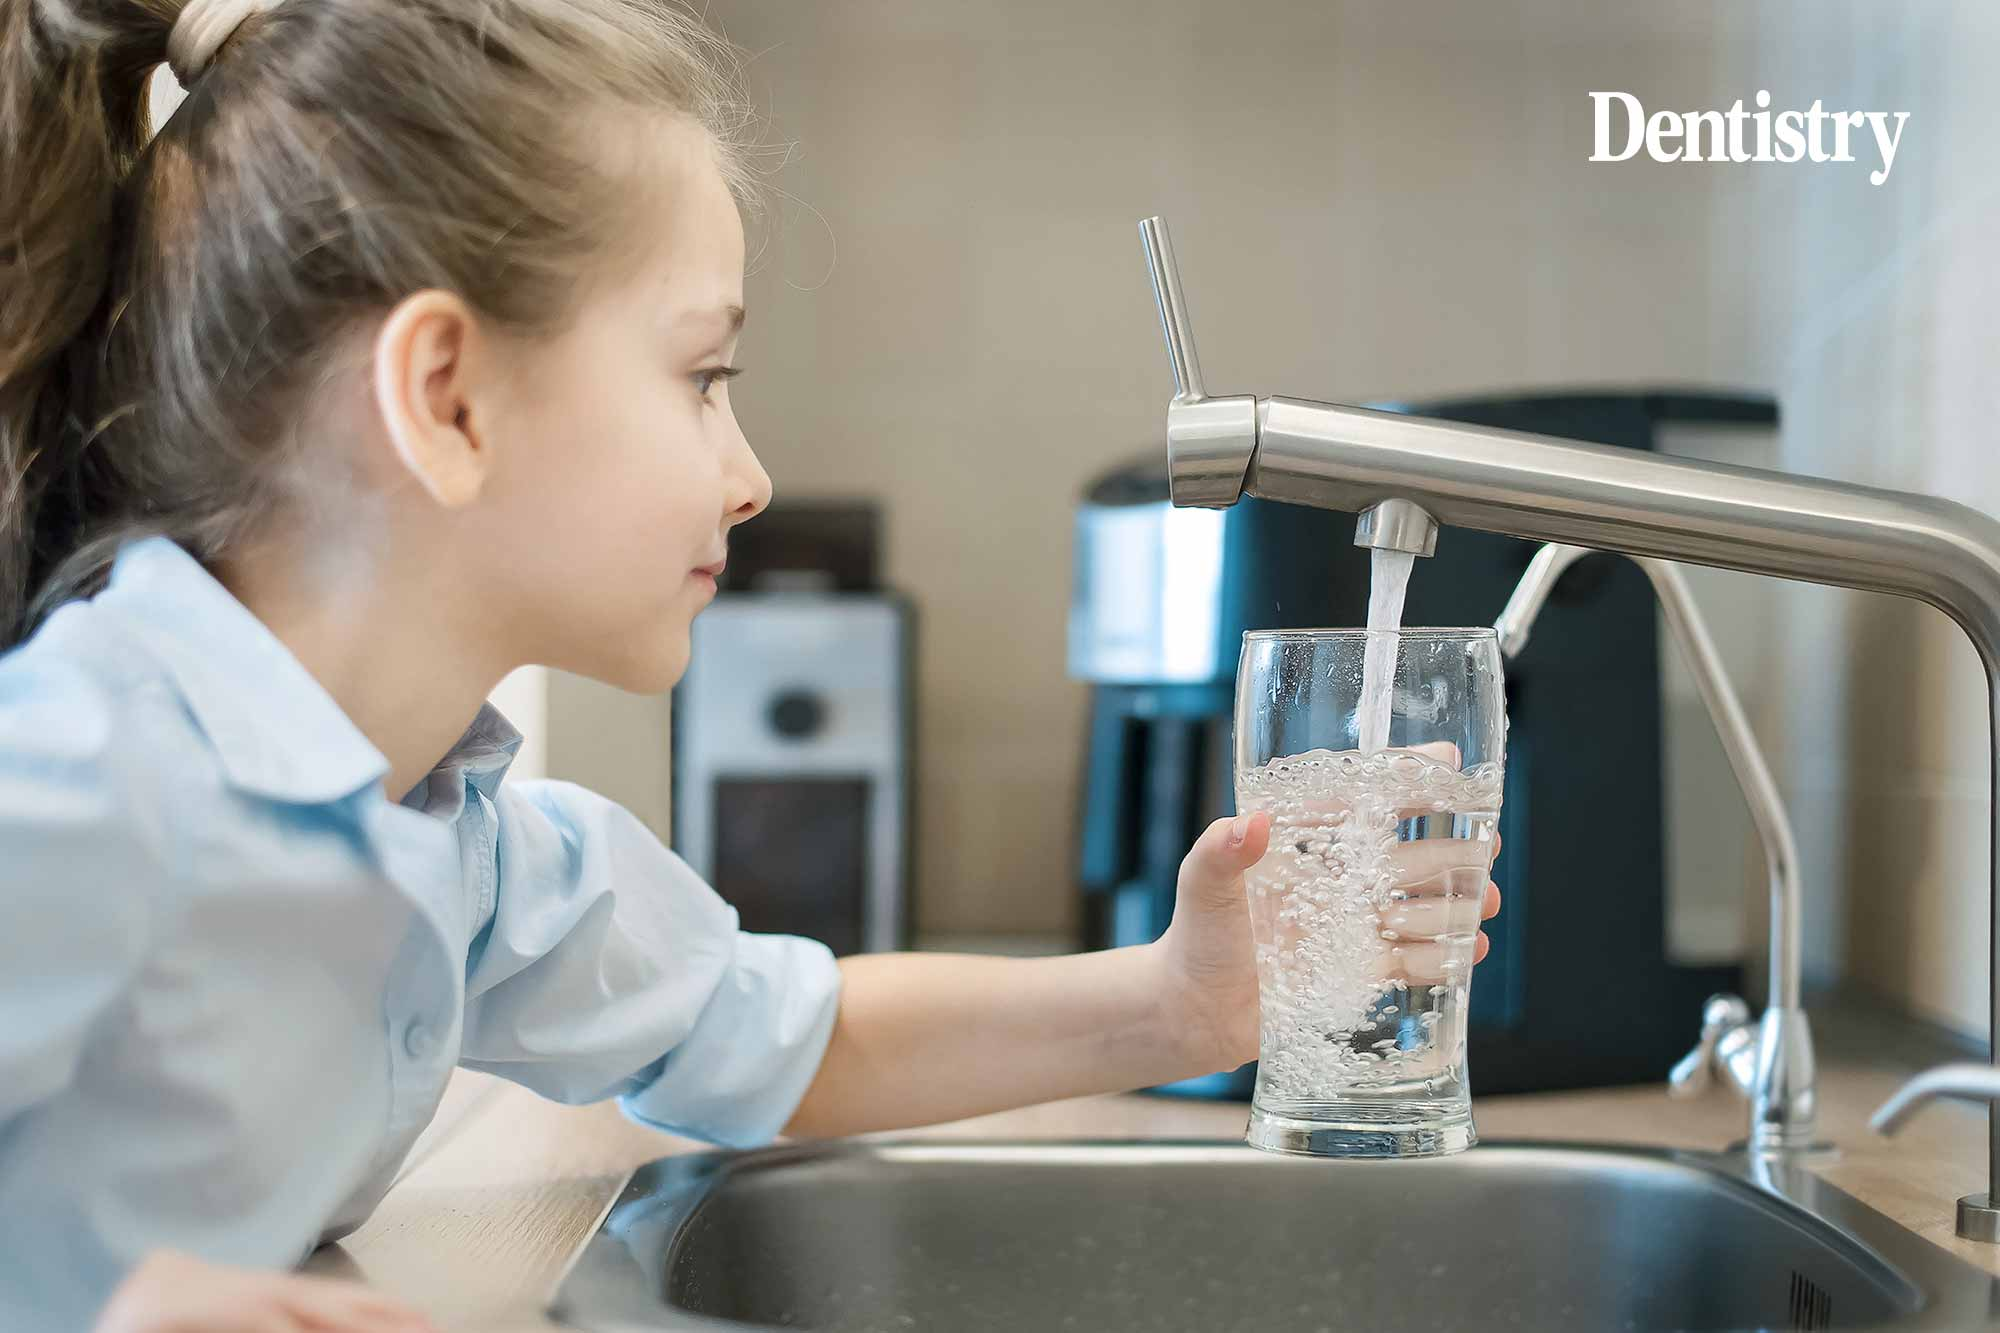 'Effective solution' – fluoride set to be added to UK drinking water